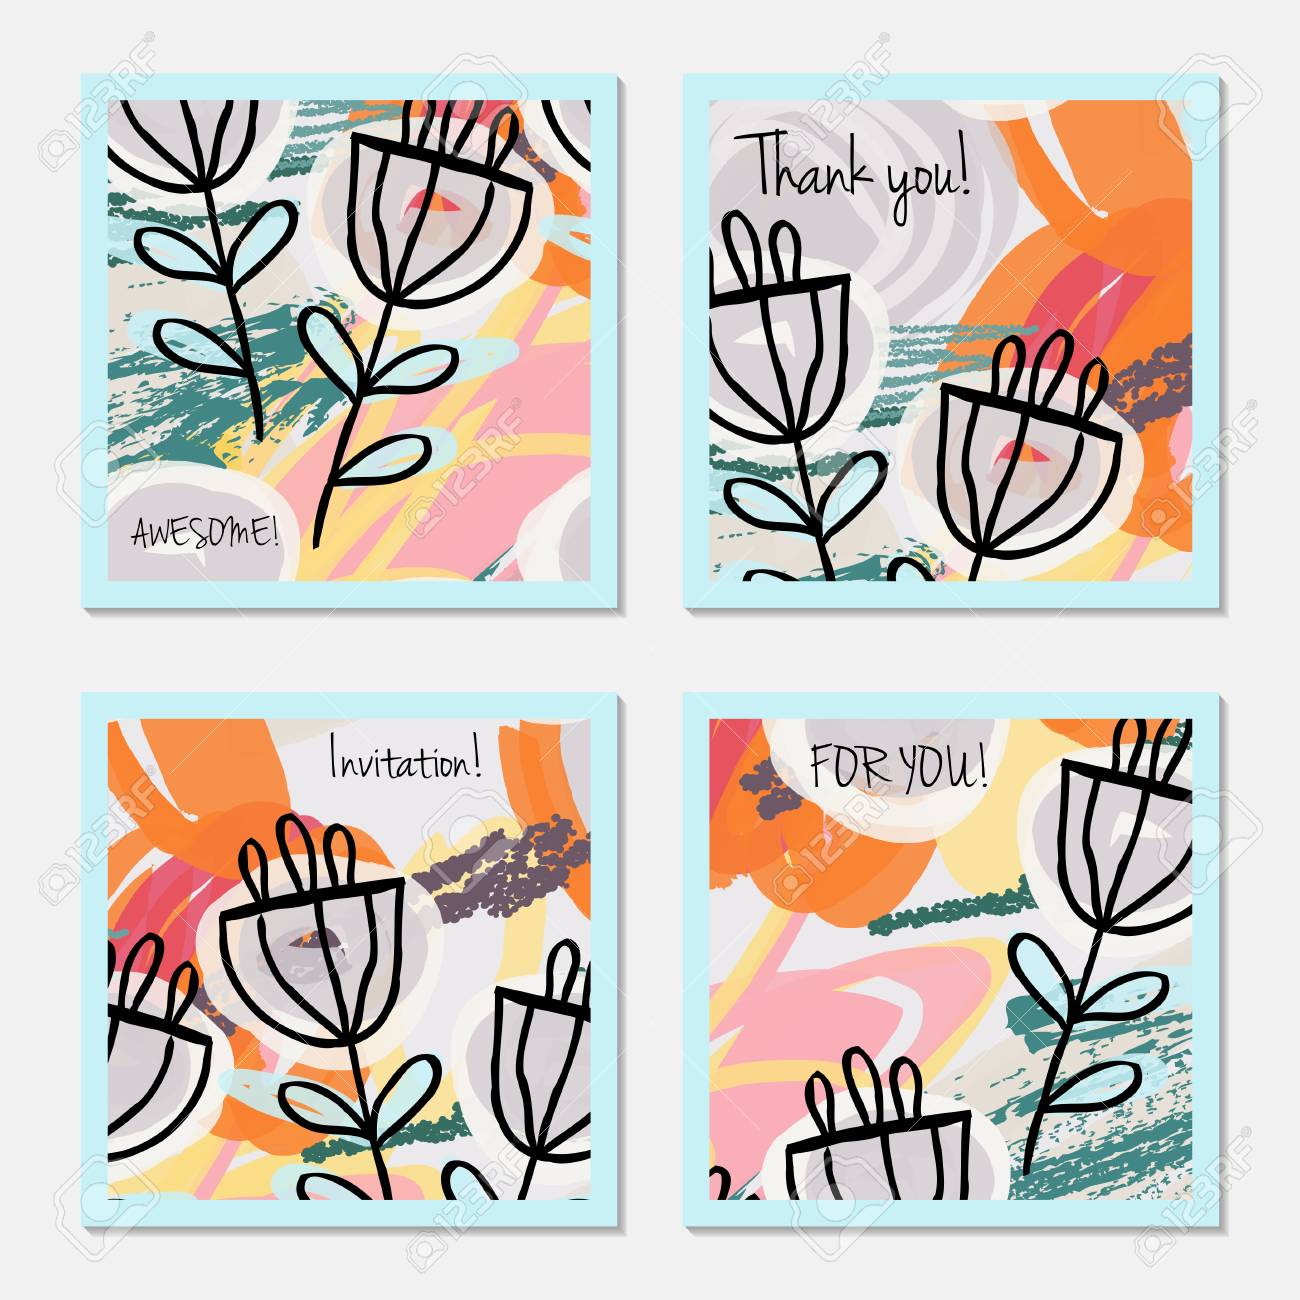 Hand Drawn Creative Invitation Greeting Cards Invitation Party